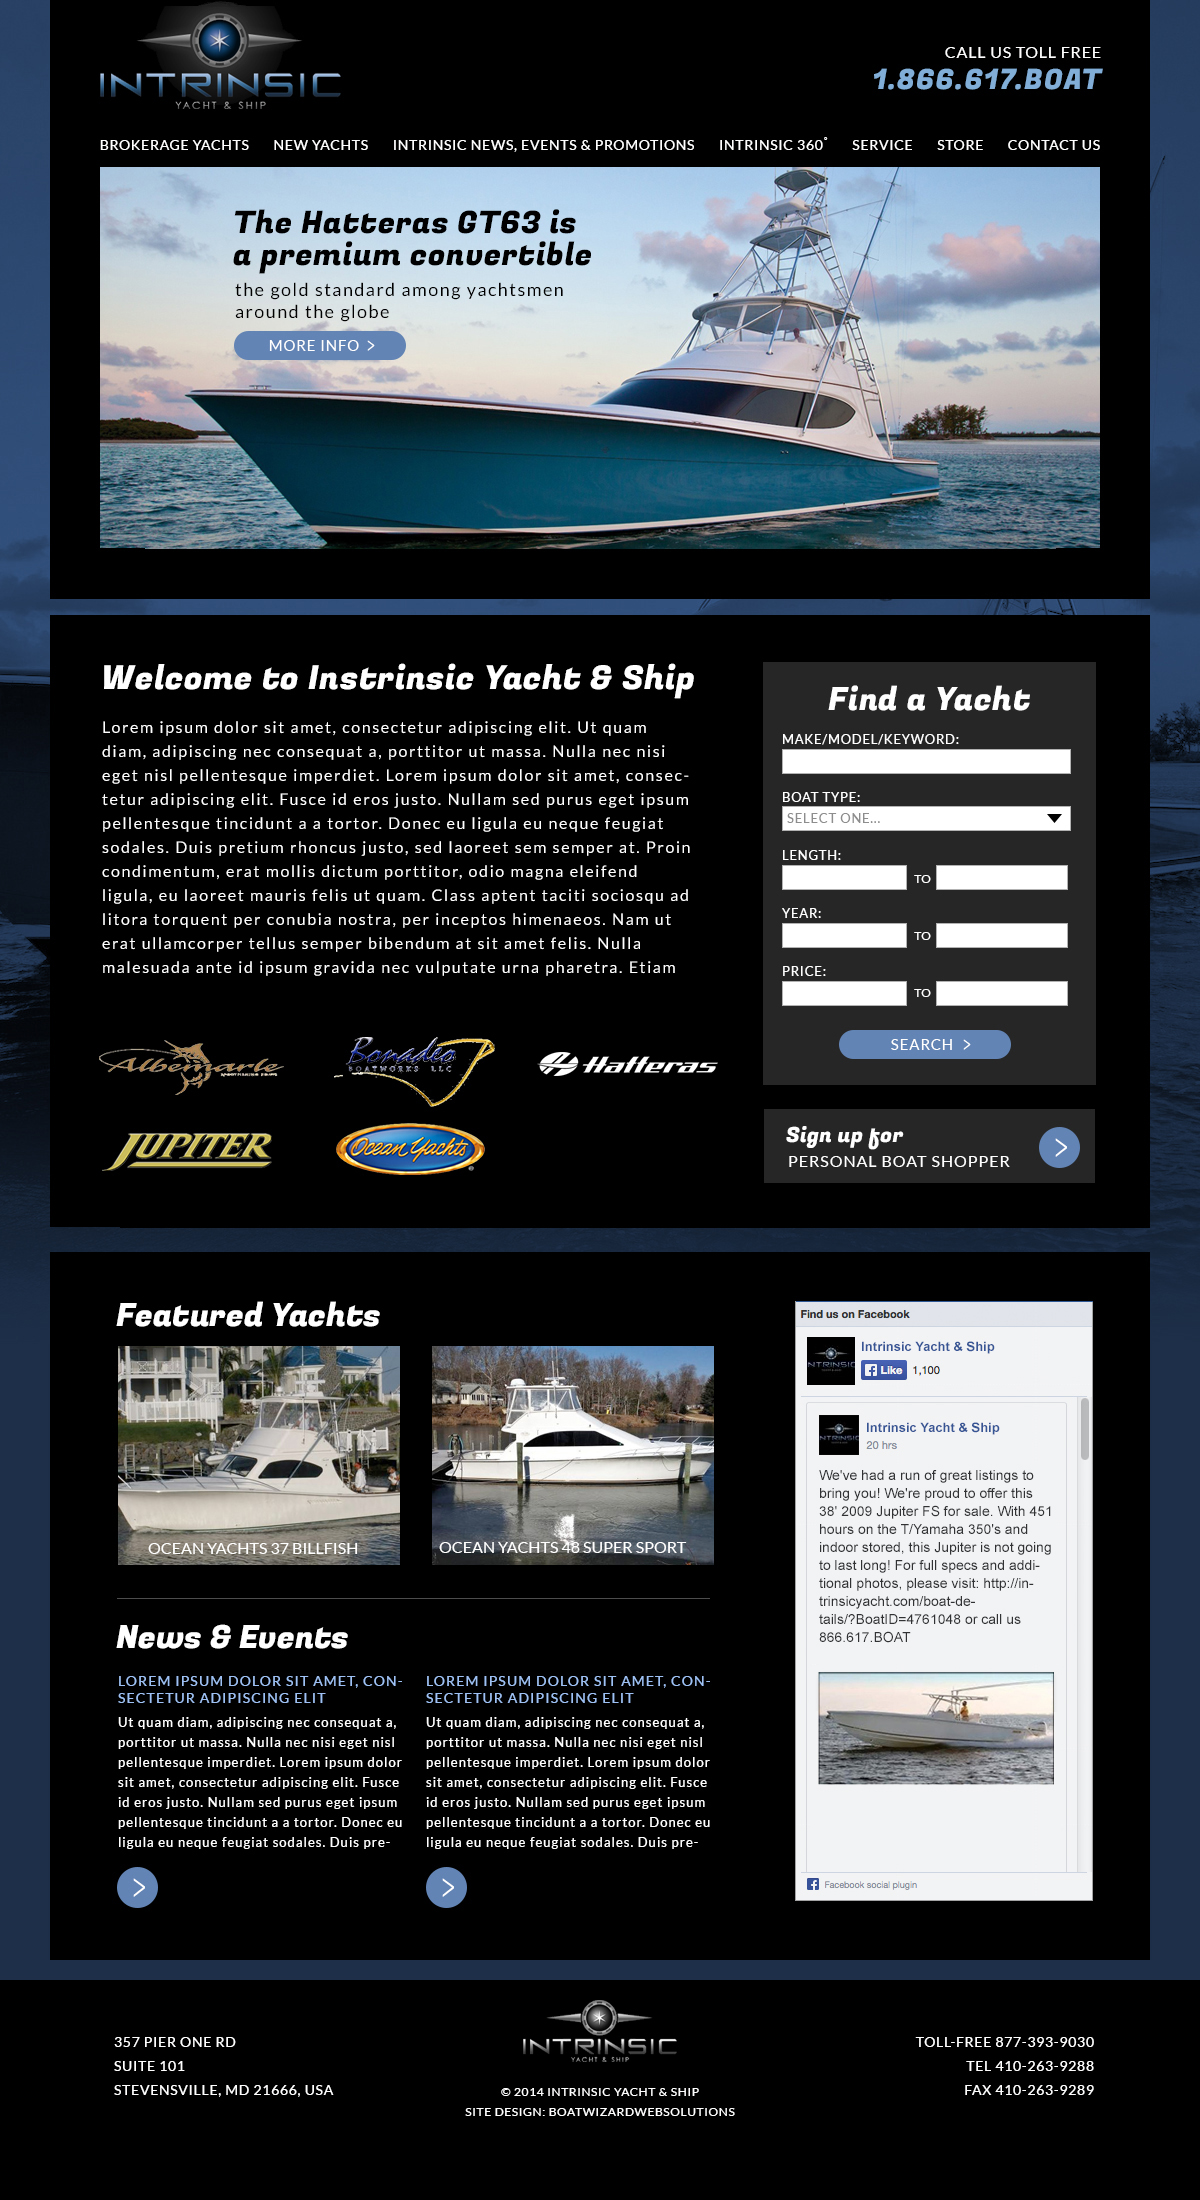 Intrinsic Yacht & Ship web site